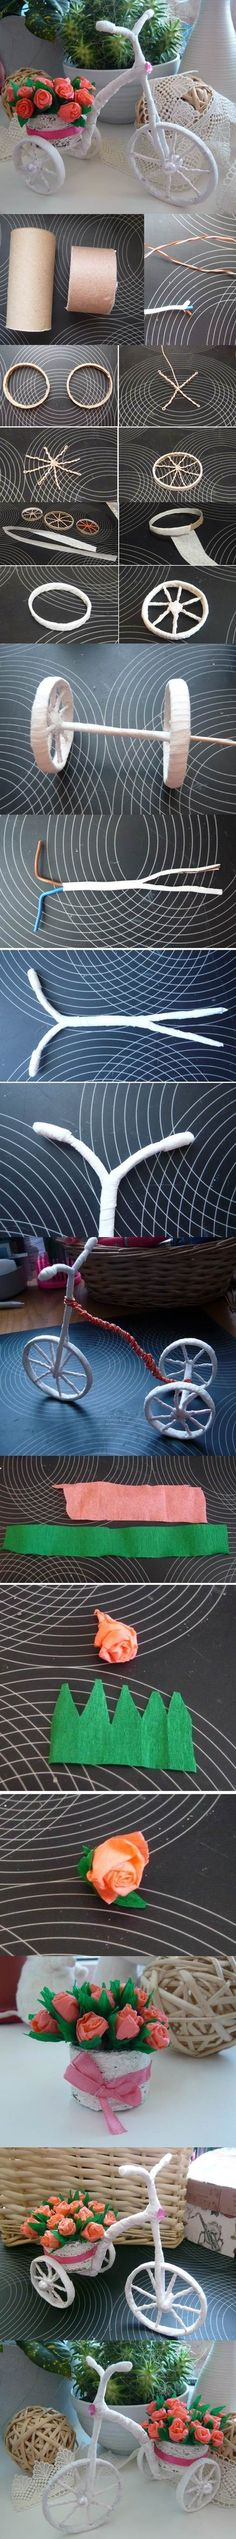 DIY Little Bike Carrying Beautiful Flowers Decoration: